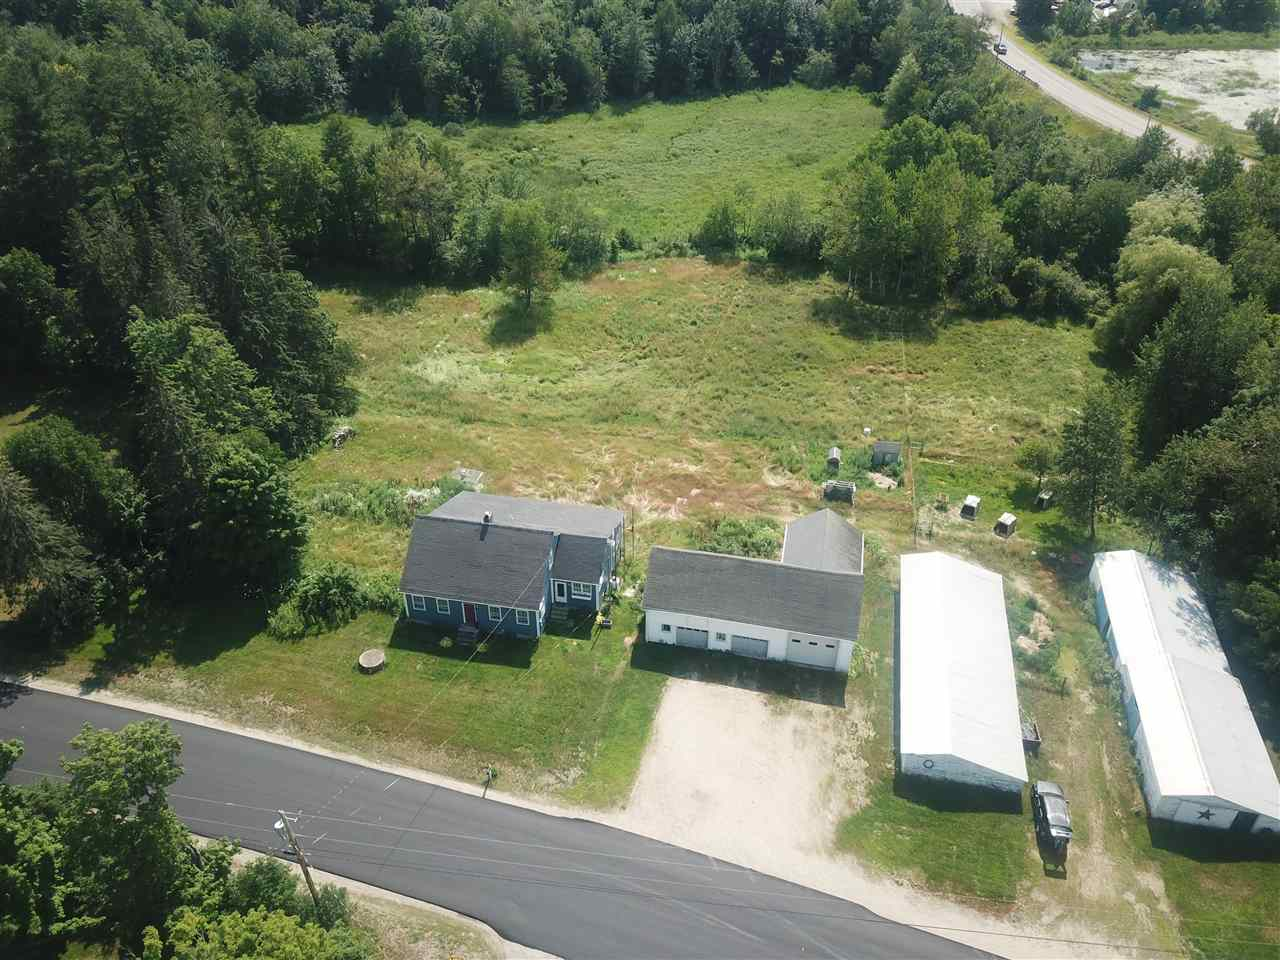 MLS 4768712: 74  123 North Route, Stoddard NH